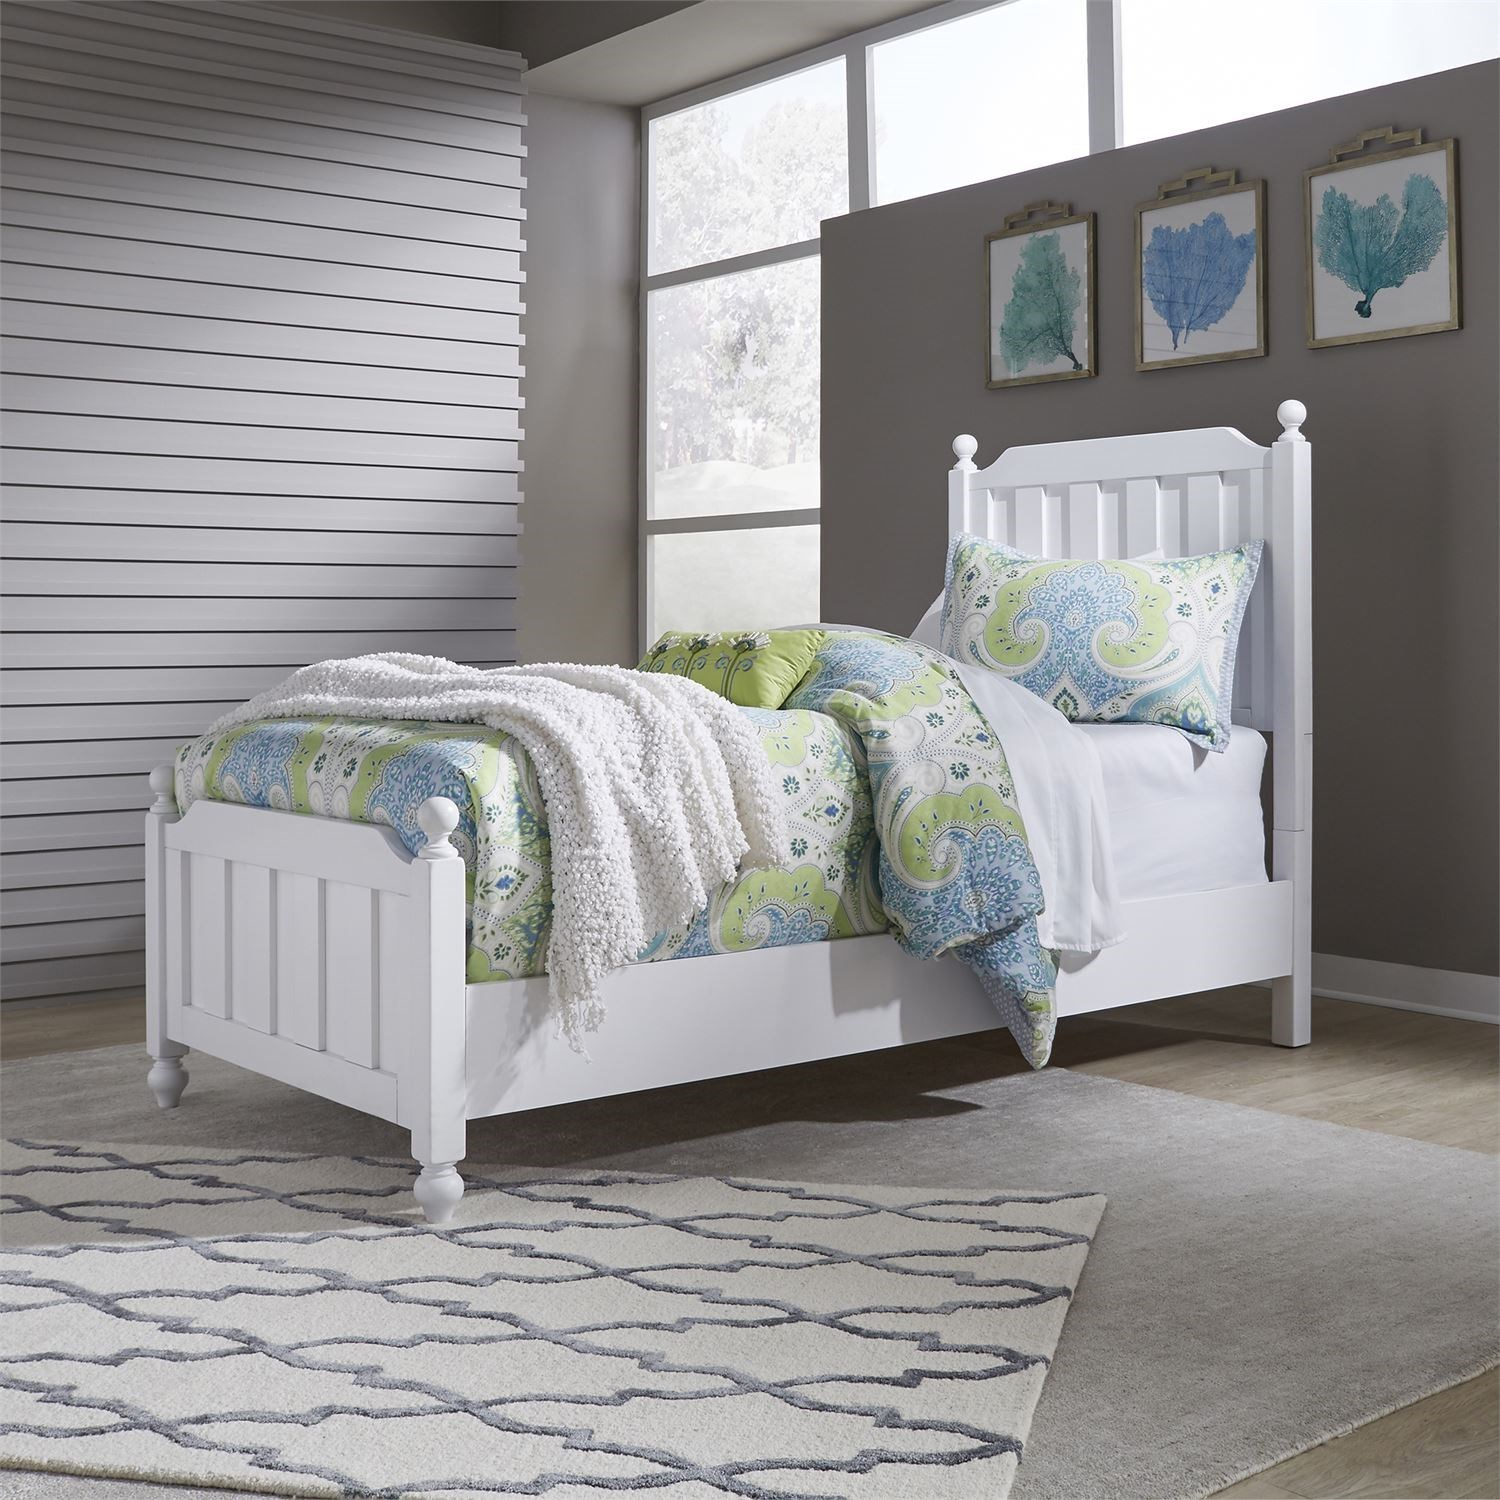 Cottage View Full Panel Bed by Liberty Furniture at Northeast Factory Direct